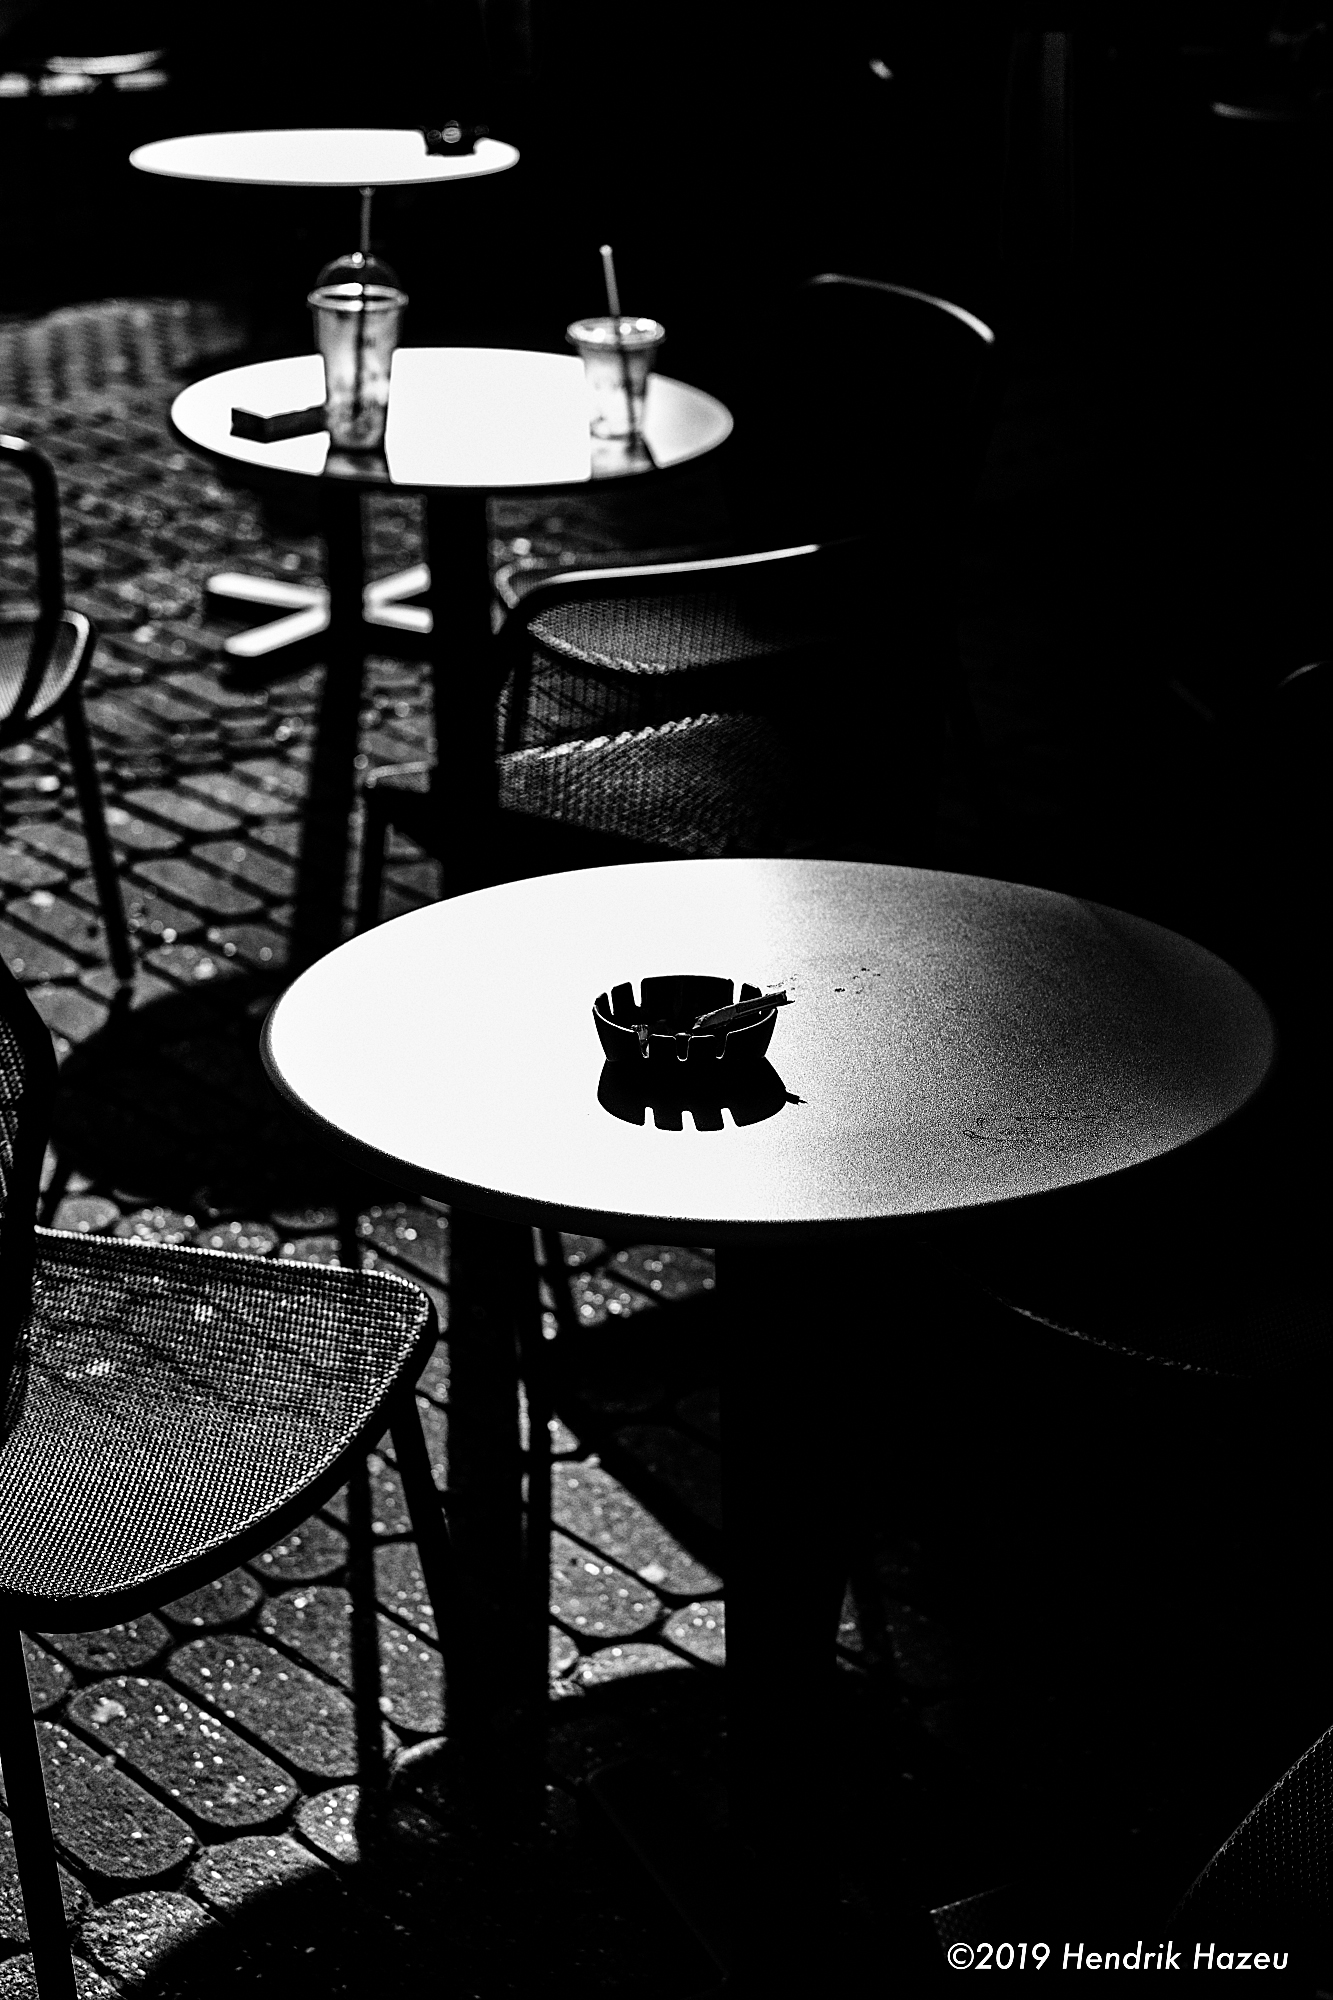 3 tables in the sun, seen with X-Pro2 and XF 18mm F/2 @F/2.8, 1/1700sec, 200 ISO